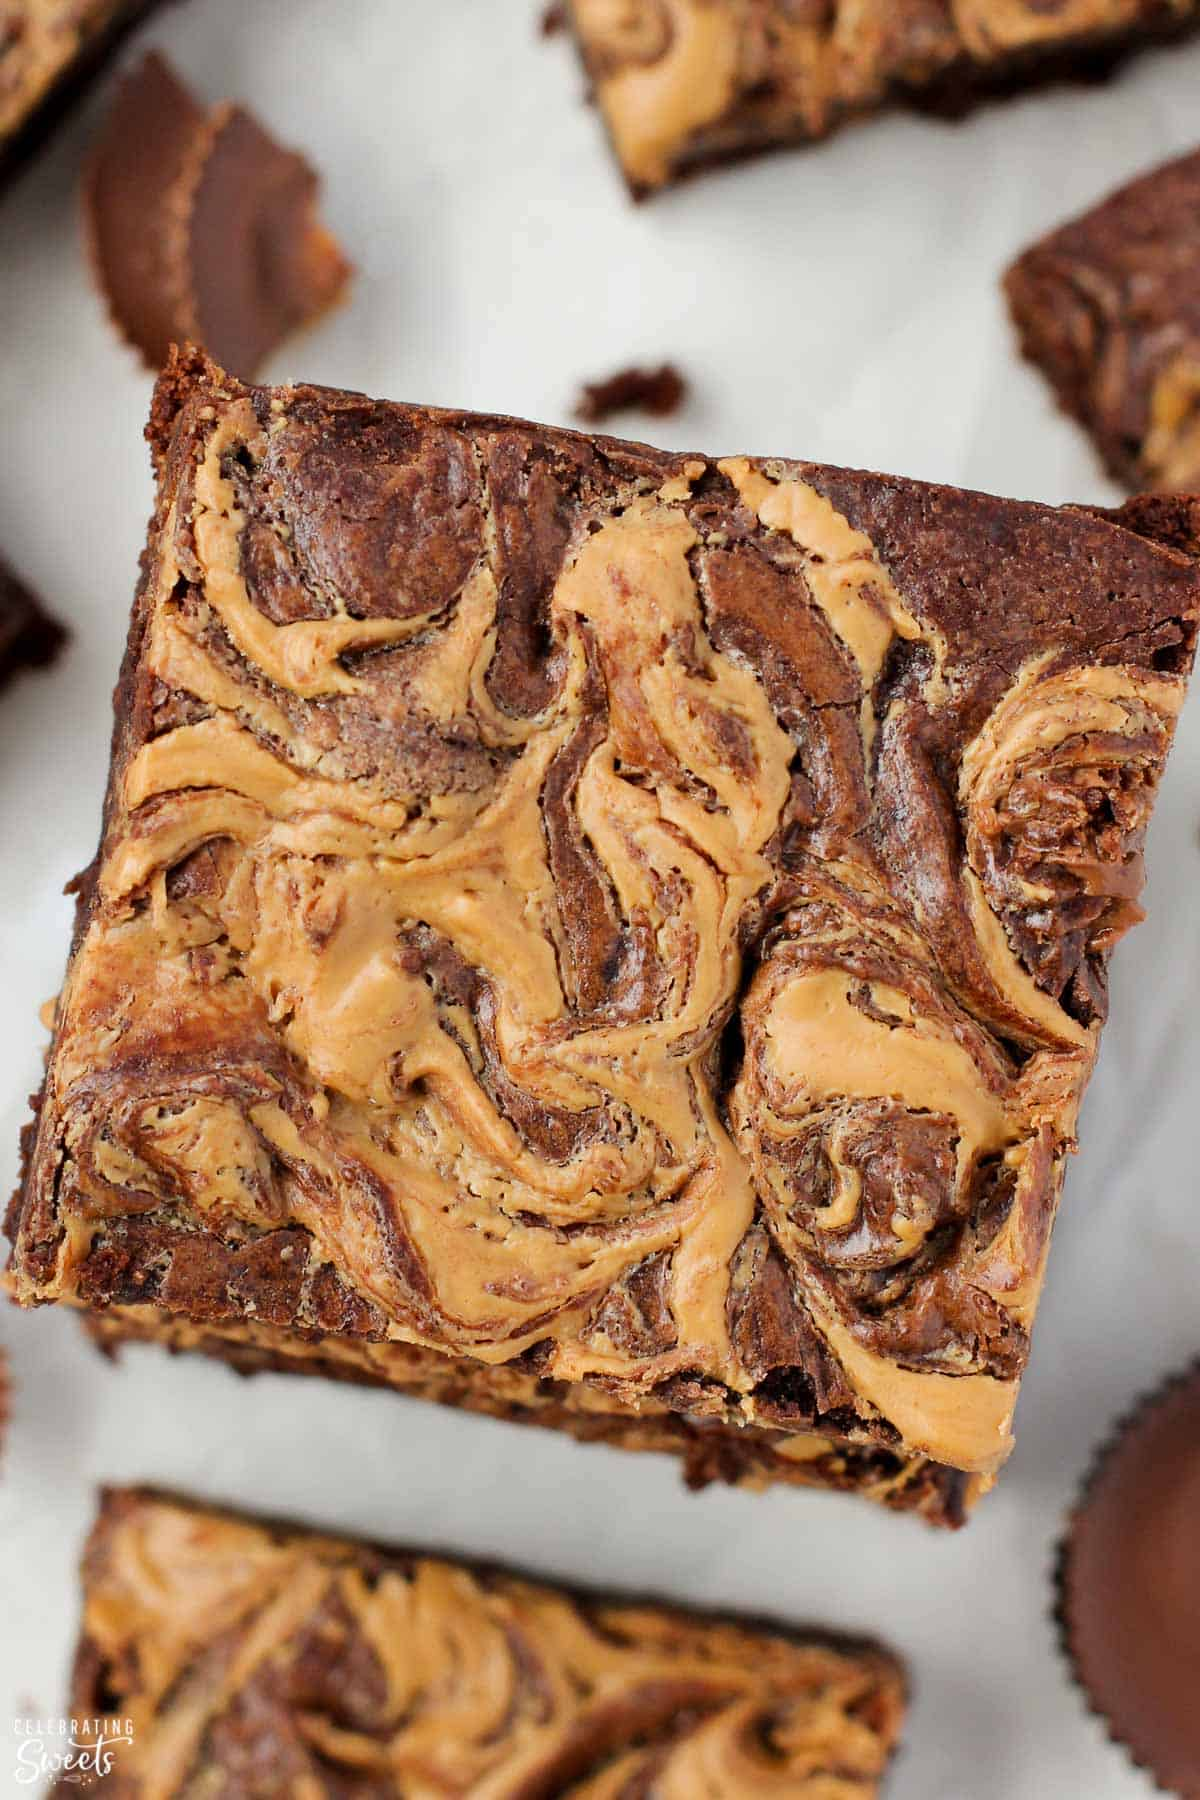 Closeup of a brownie with a peanut butter swirl